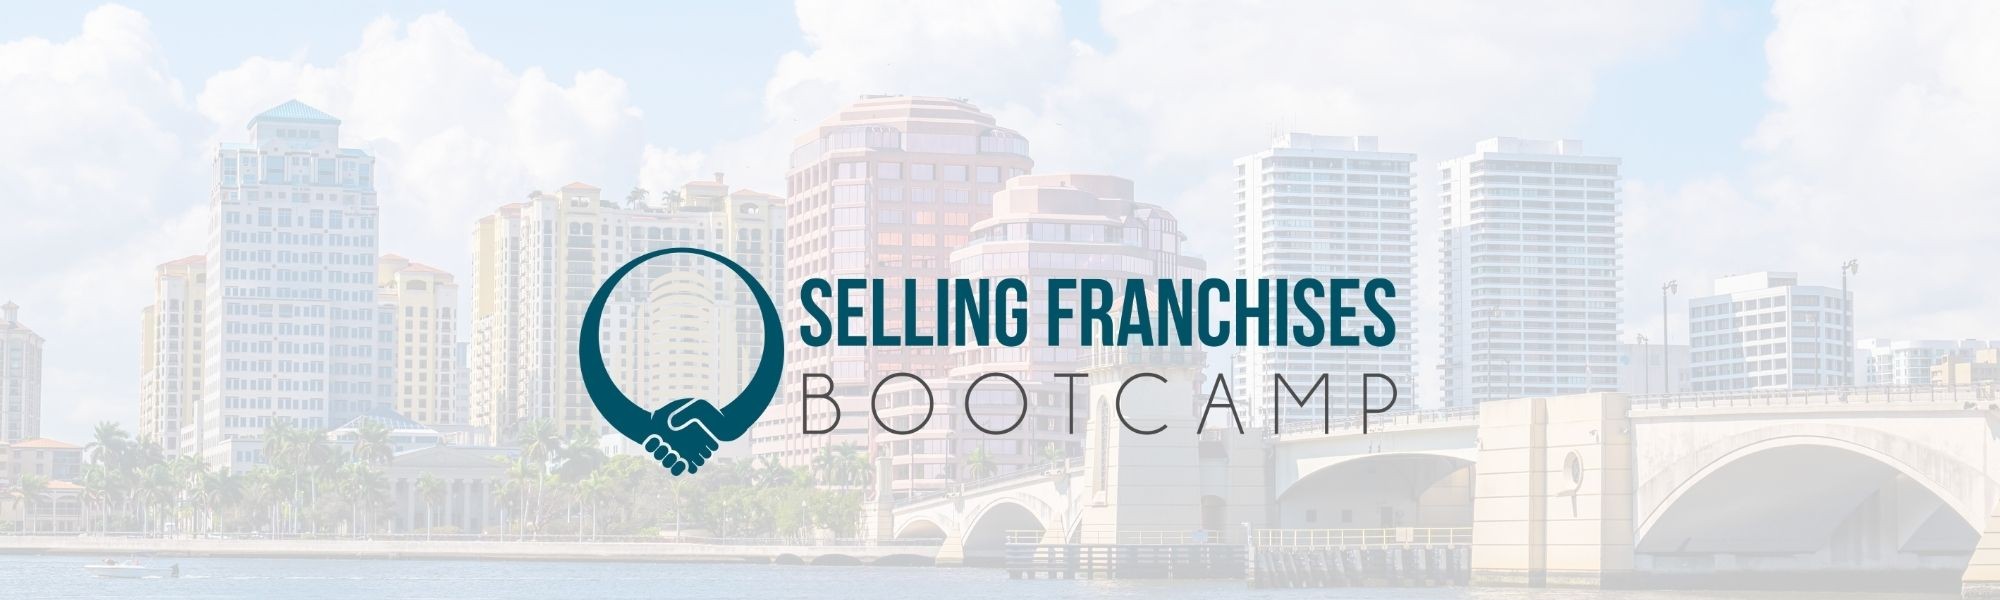 West palm beach with selling franchise bootcamp logo